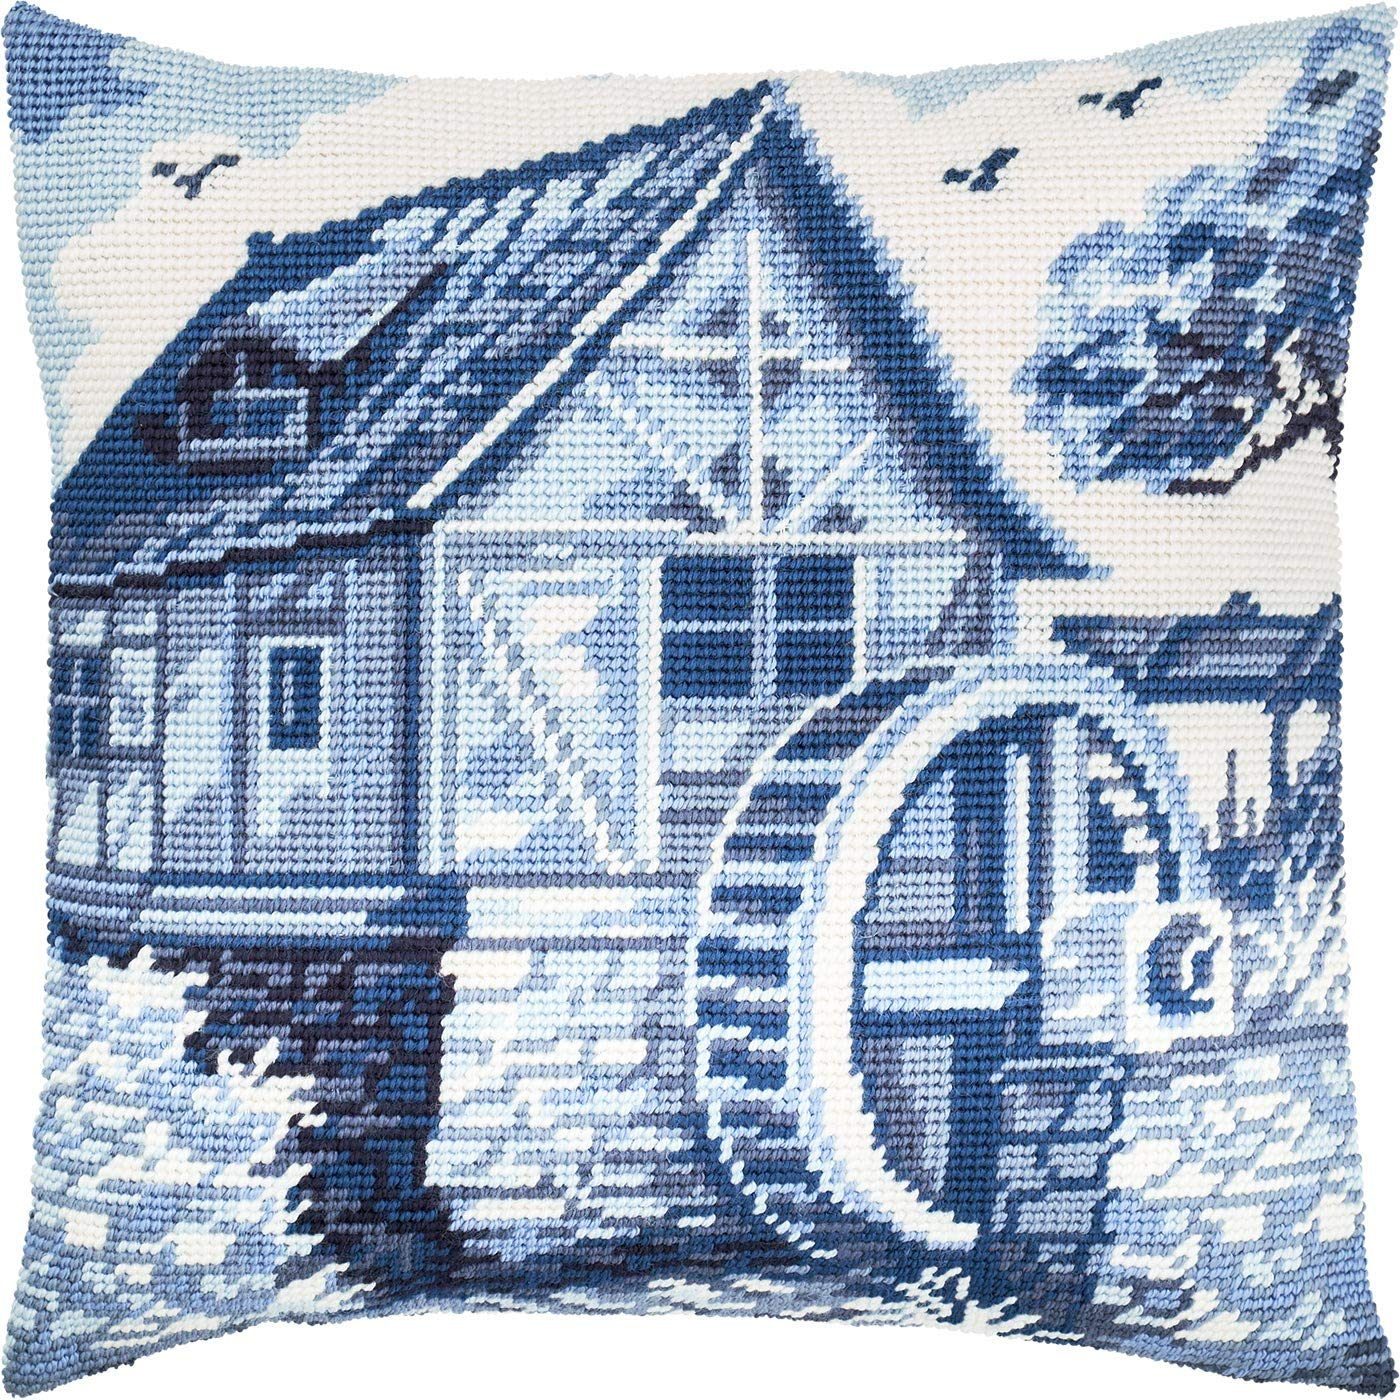 Throw Pillow 16/×16 Inches Printed Tapestry Canvas Cross Stitch Kit European Quality Mediterranean